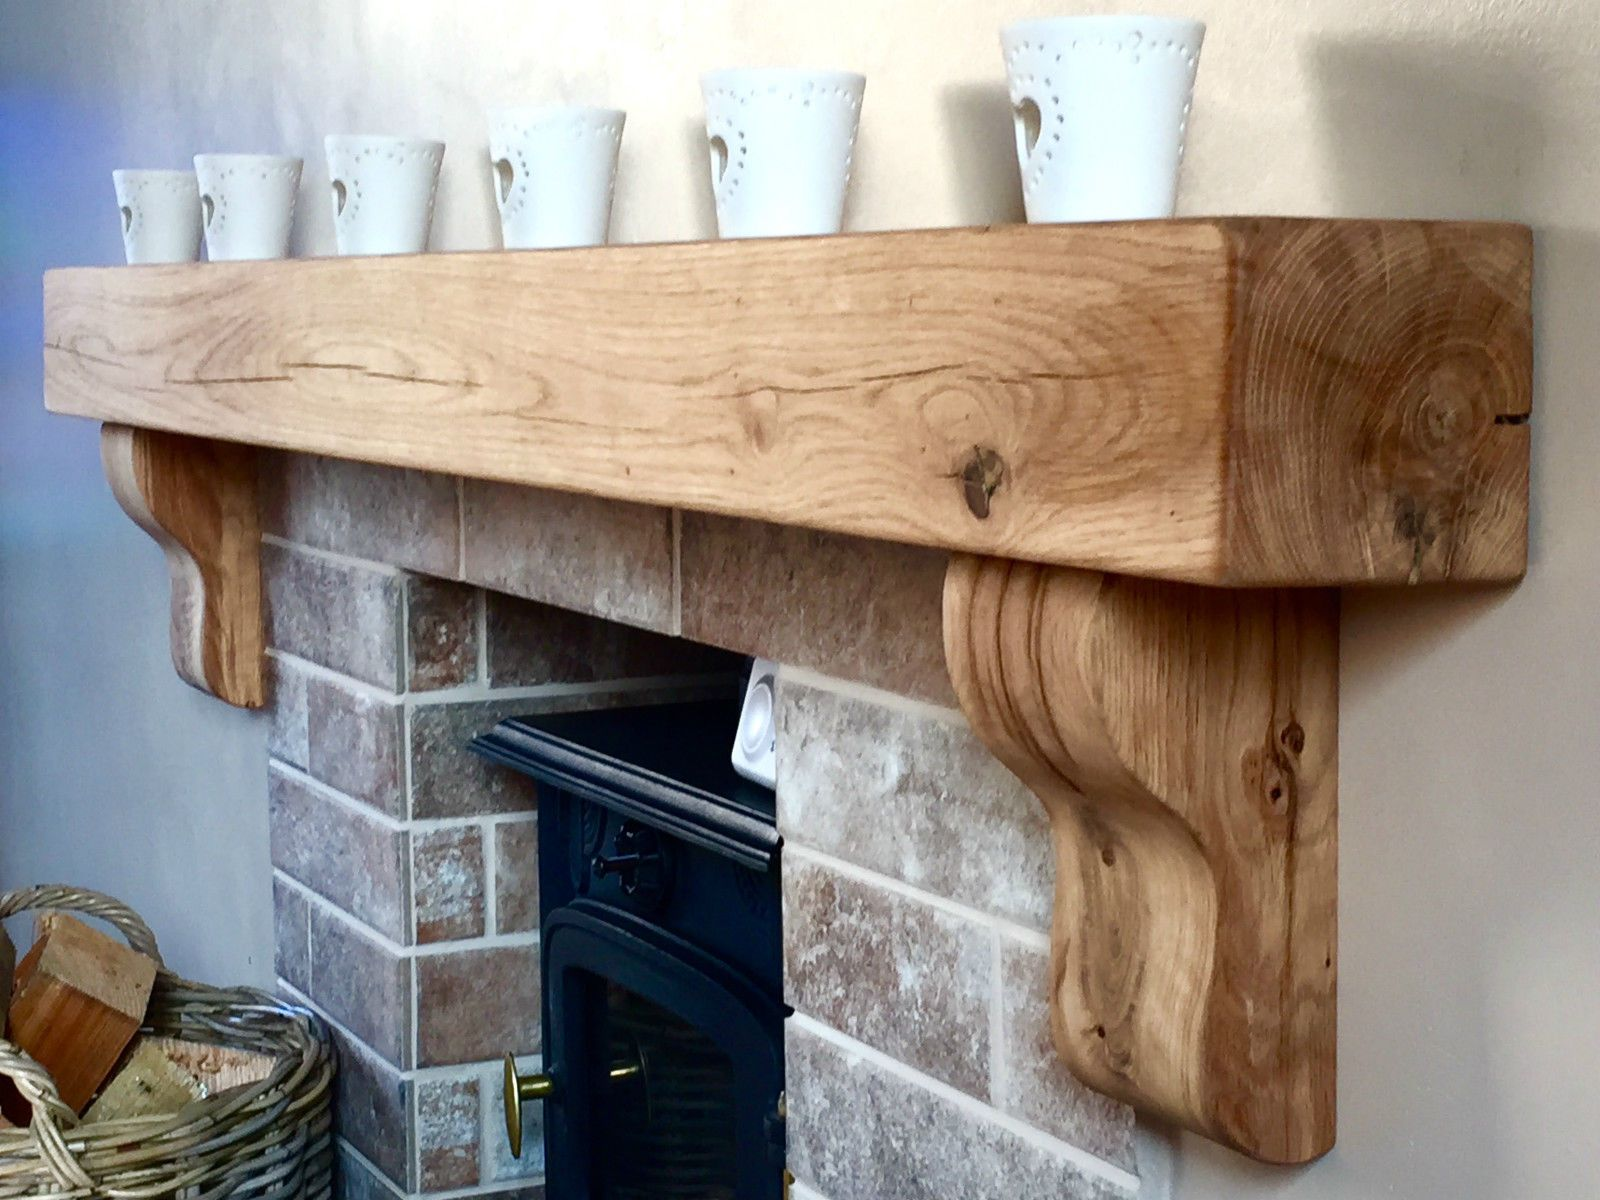 details about oak beam with corbels floating mantel shelf wooden solid fireplace rustic corner unit small wall book shelves tier glass diy arranging and tures wood trim non stick